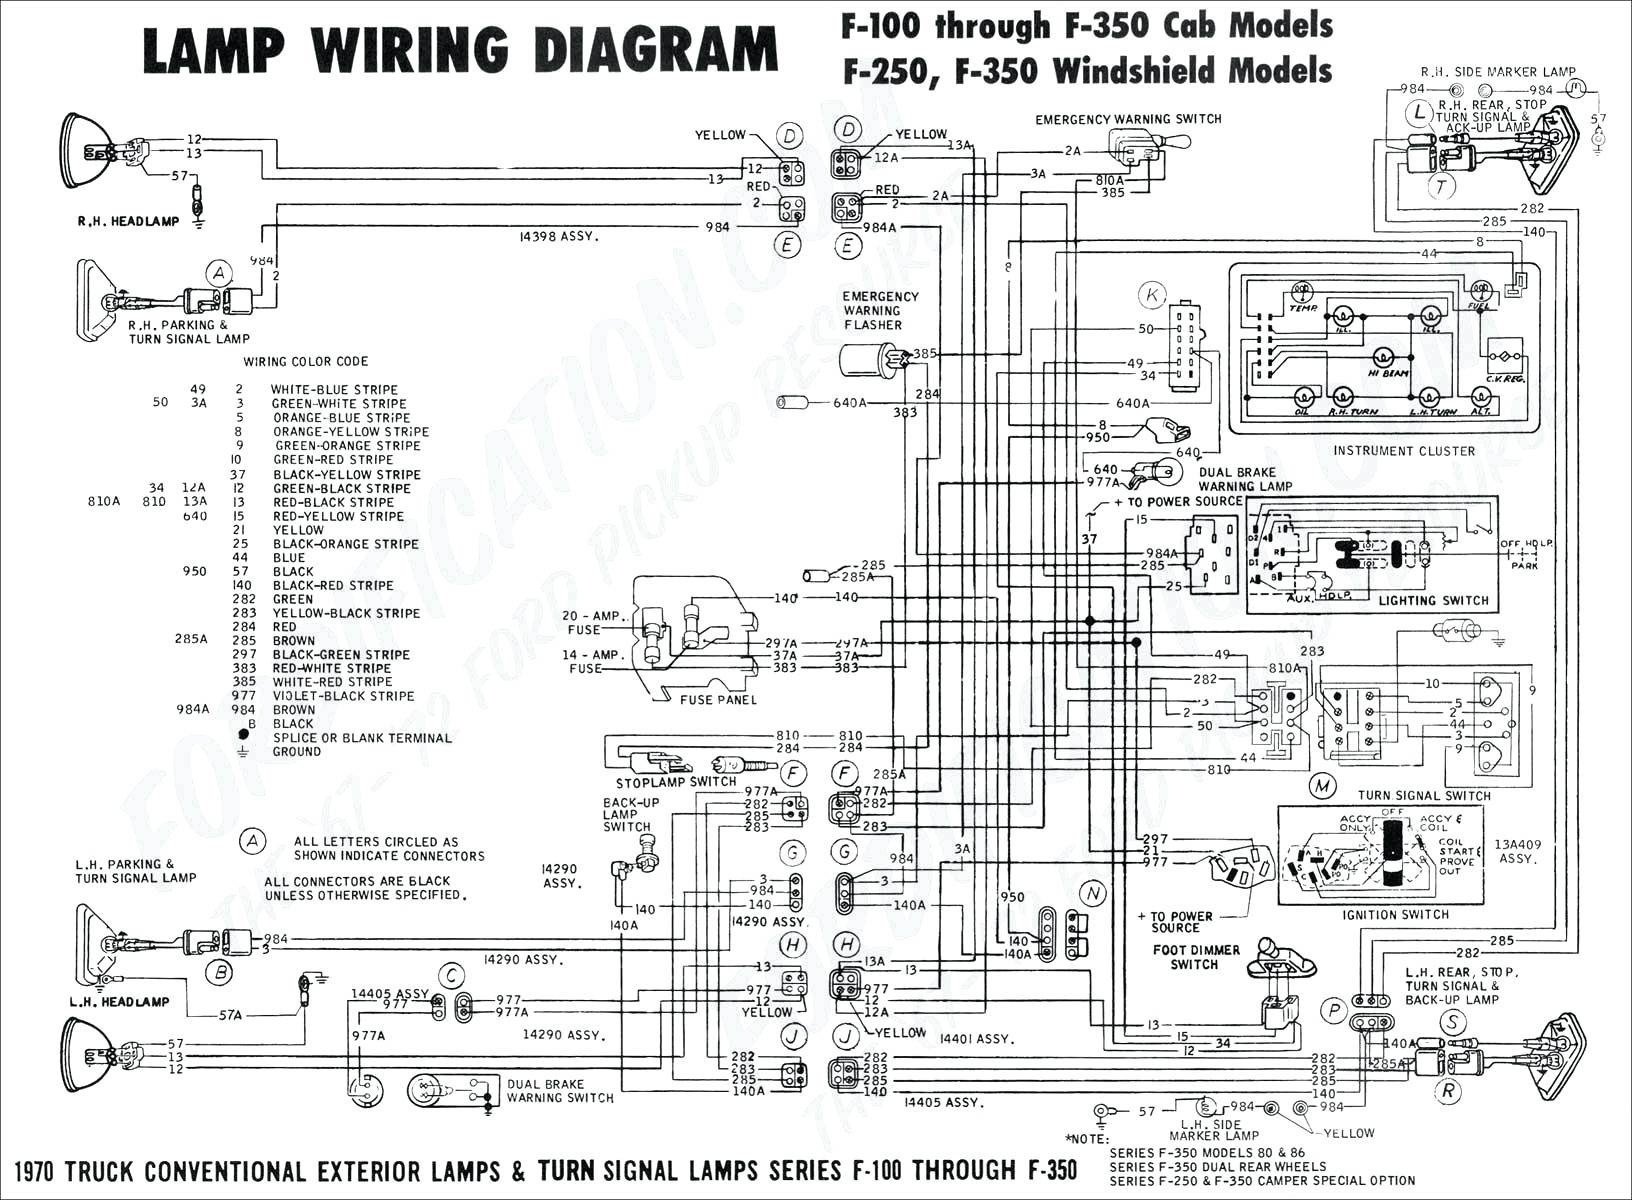 1984 Chevy Truck Wiring Diagram 1981 Chevy Van Wiring Diagram Another Blog About Wiring Diagram •